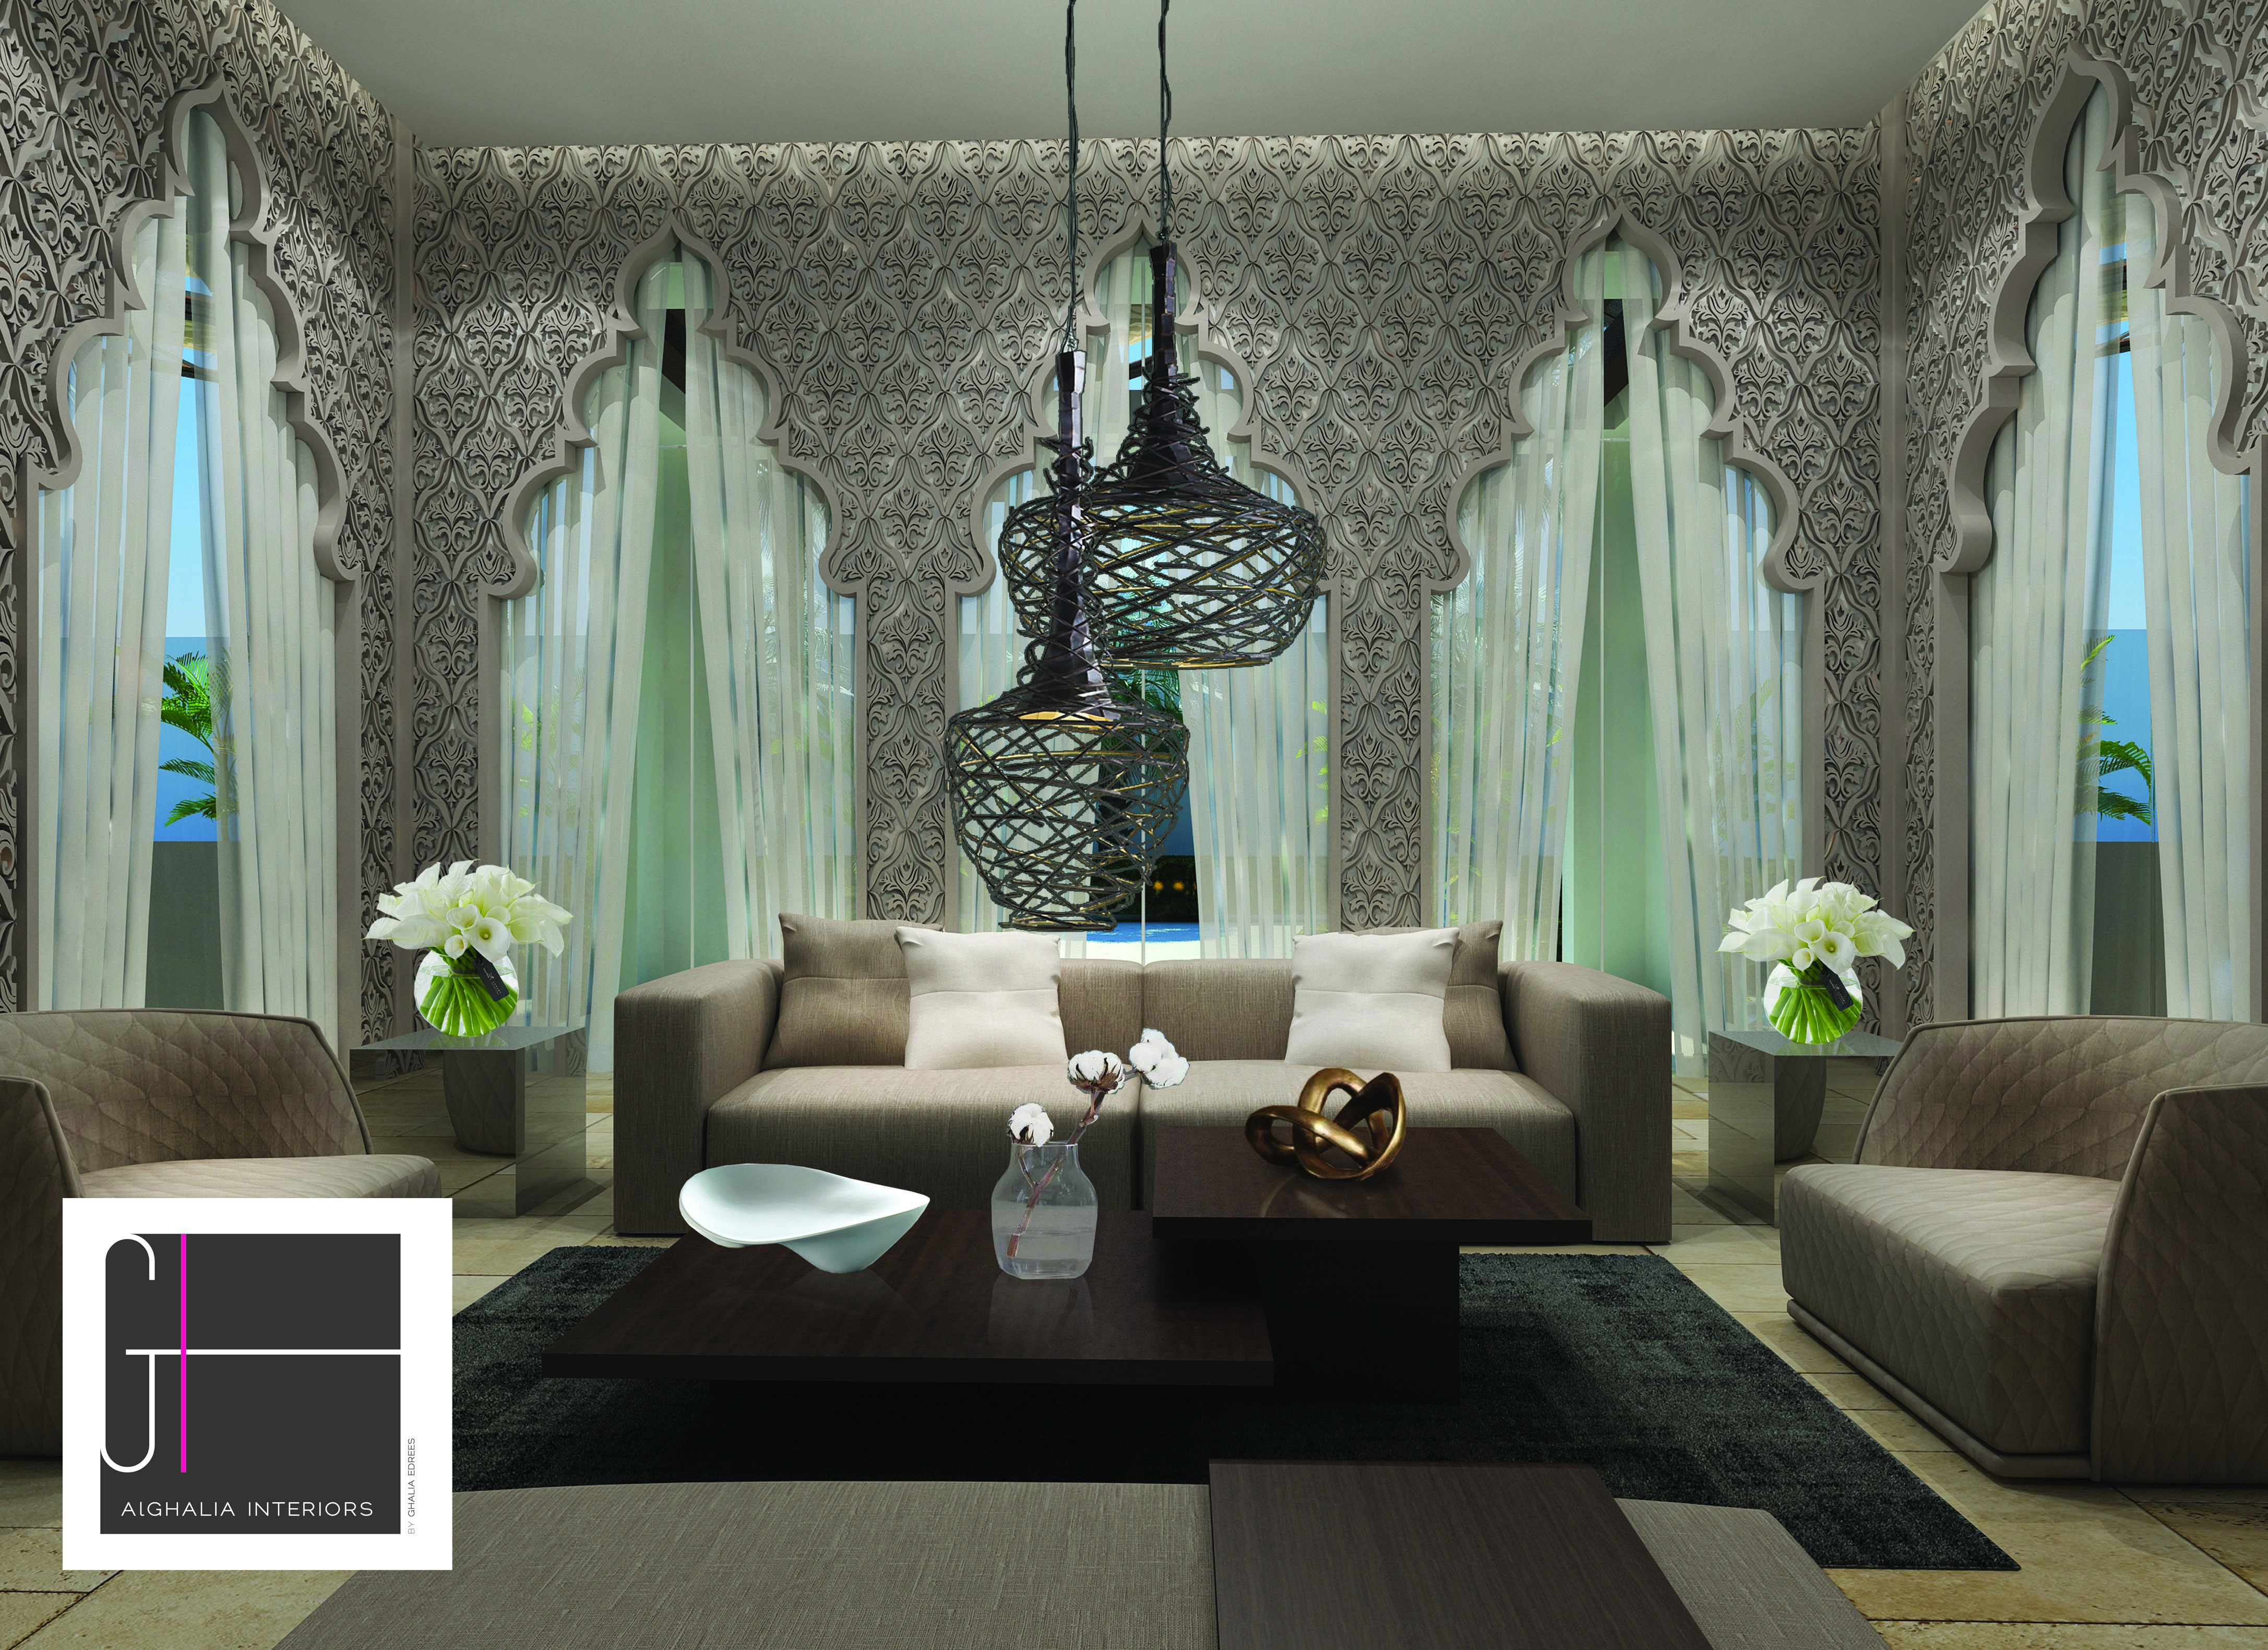 #andalusian #style #contemporaryislamic #interiordesign by  #alghaliainteriors #saudi #residential #